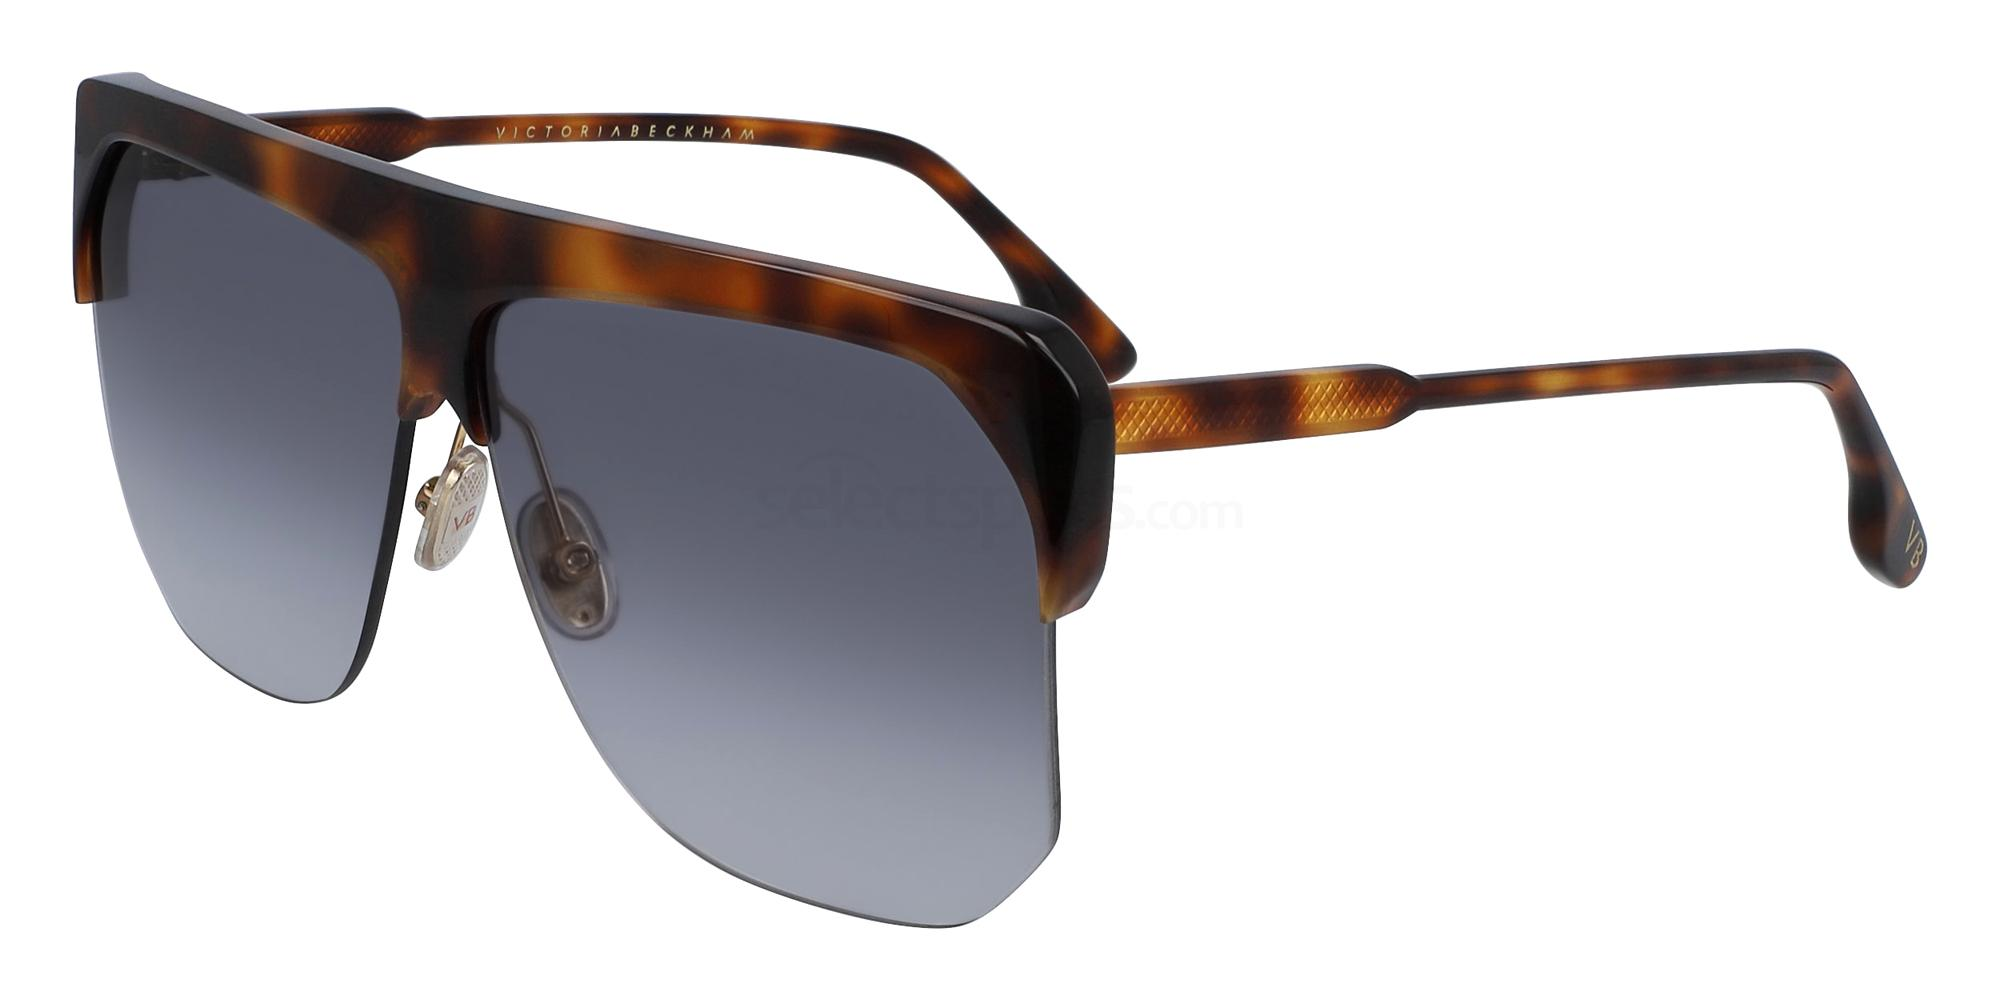 sunglasses gift guide for her christmas 2020 victoria beckham